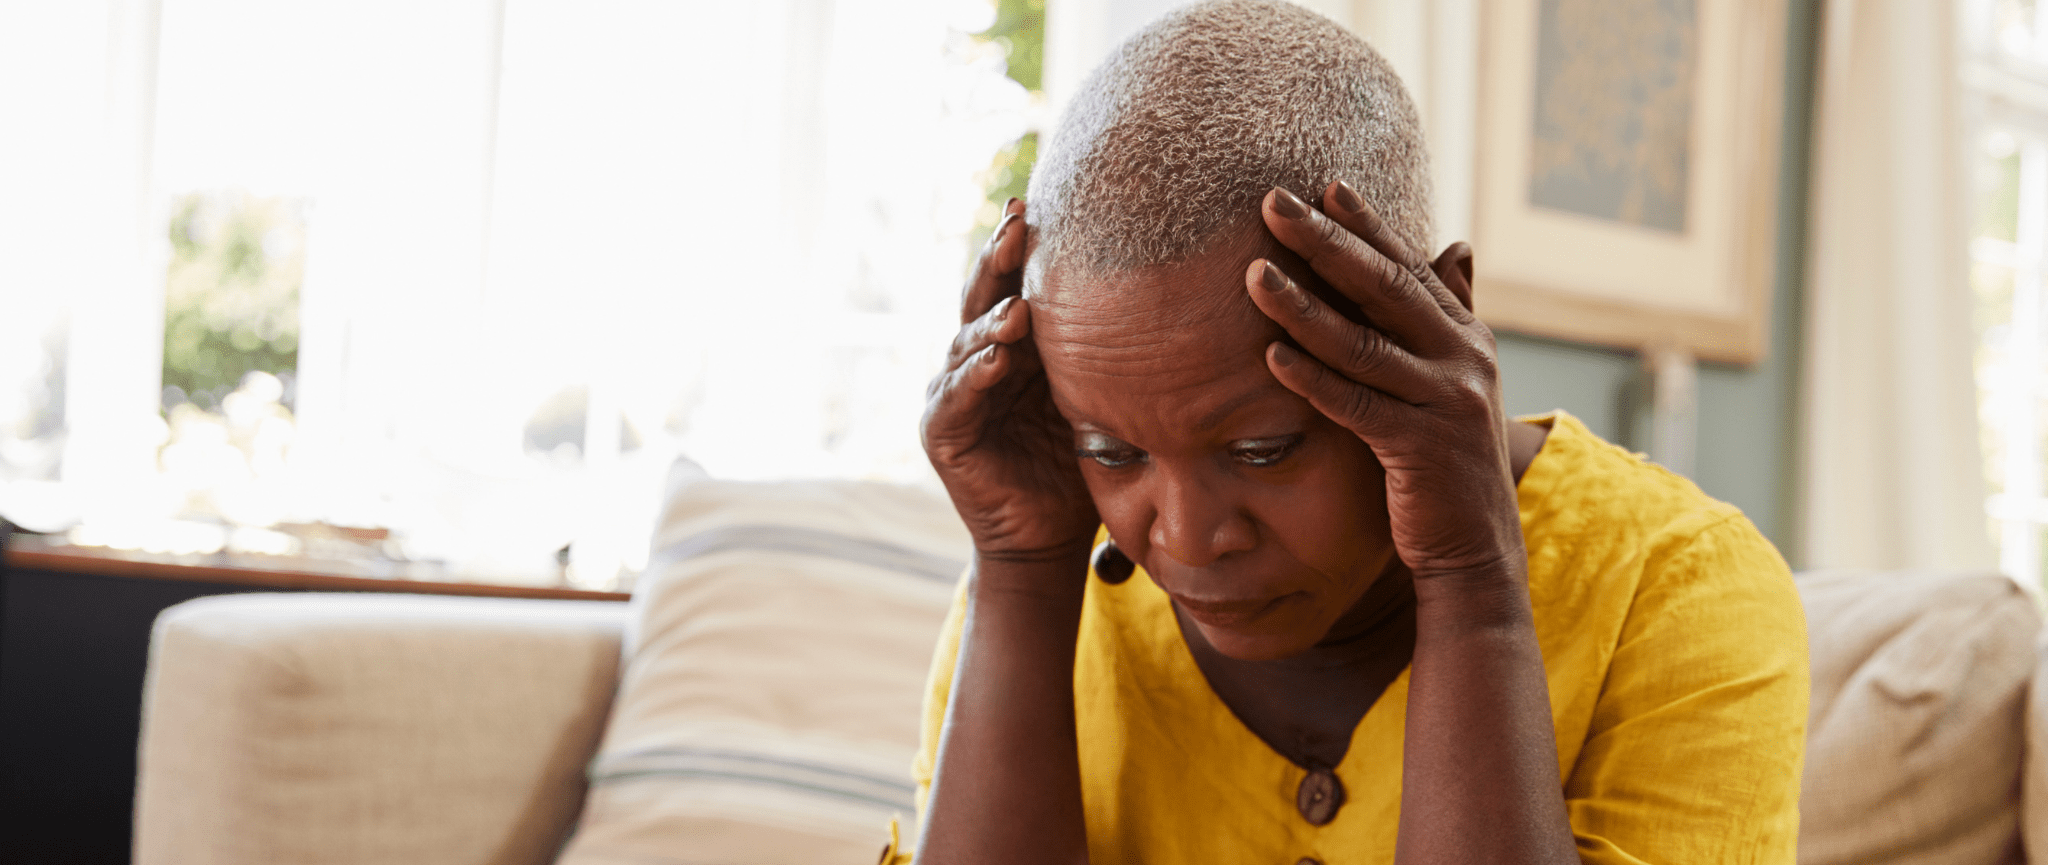 A black older adult holding her head in her hands looking stressed